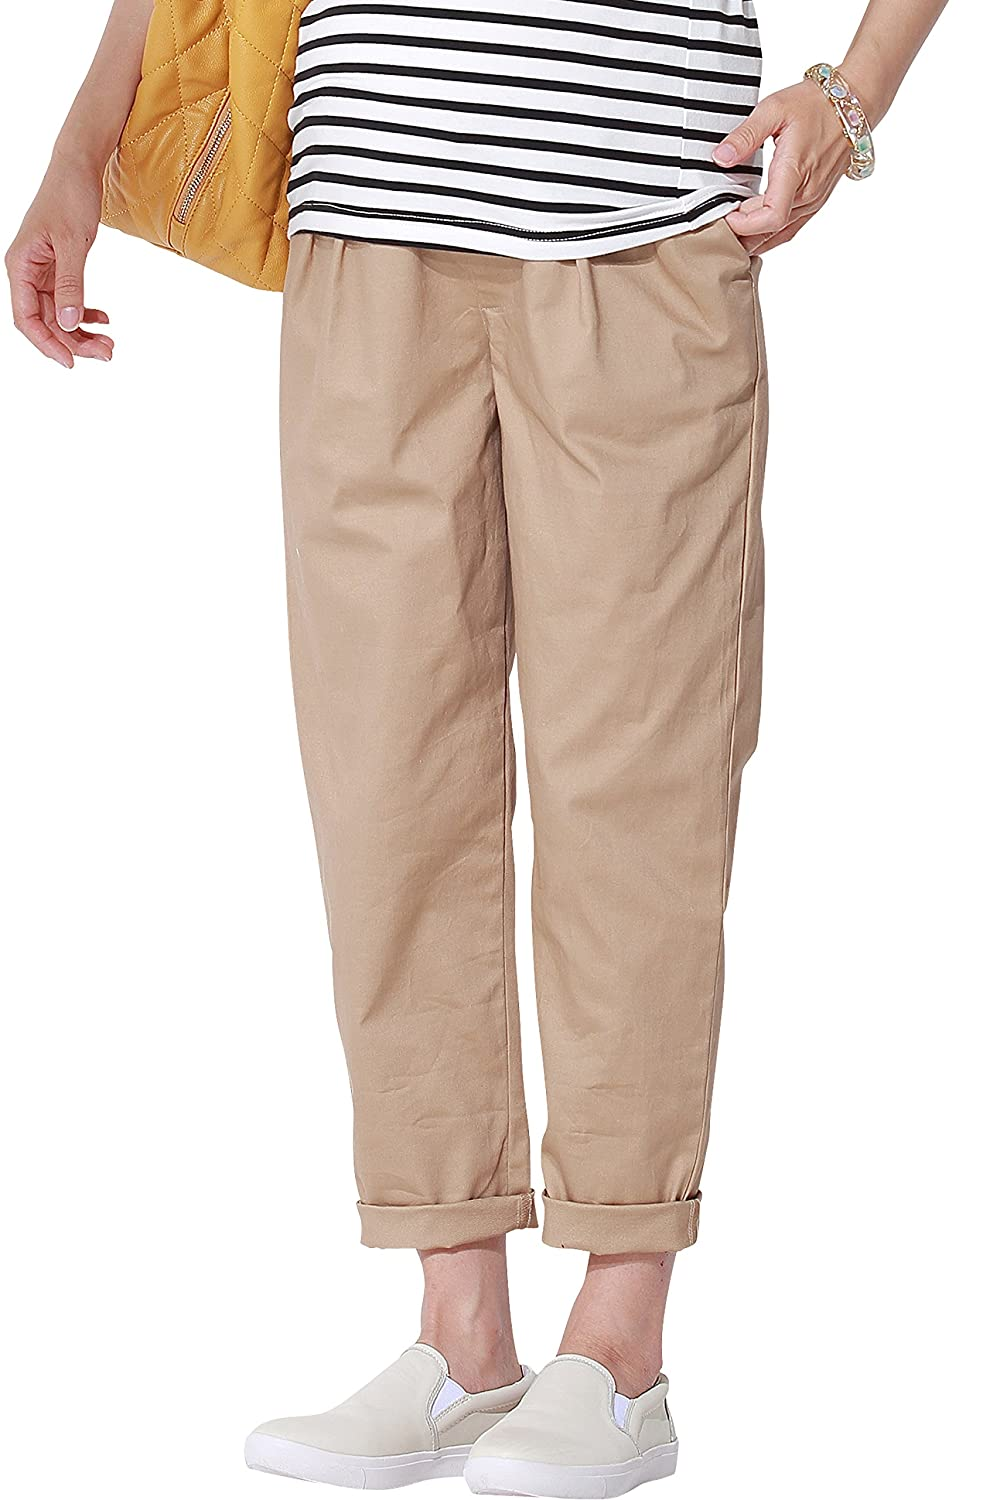 Sweet Mommy Maternity Tapered Cotton Chino Pants Sweet Mommy Co. Ltd. sp5085